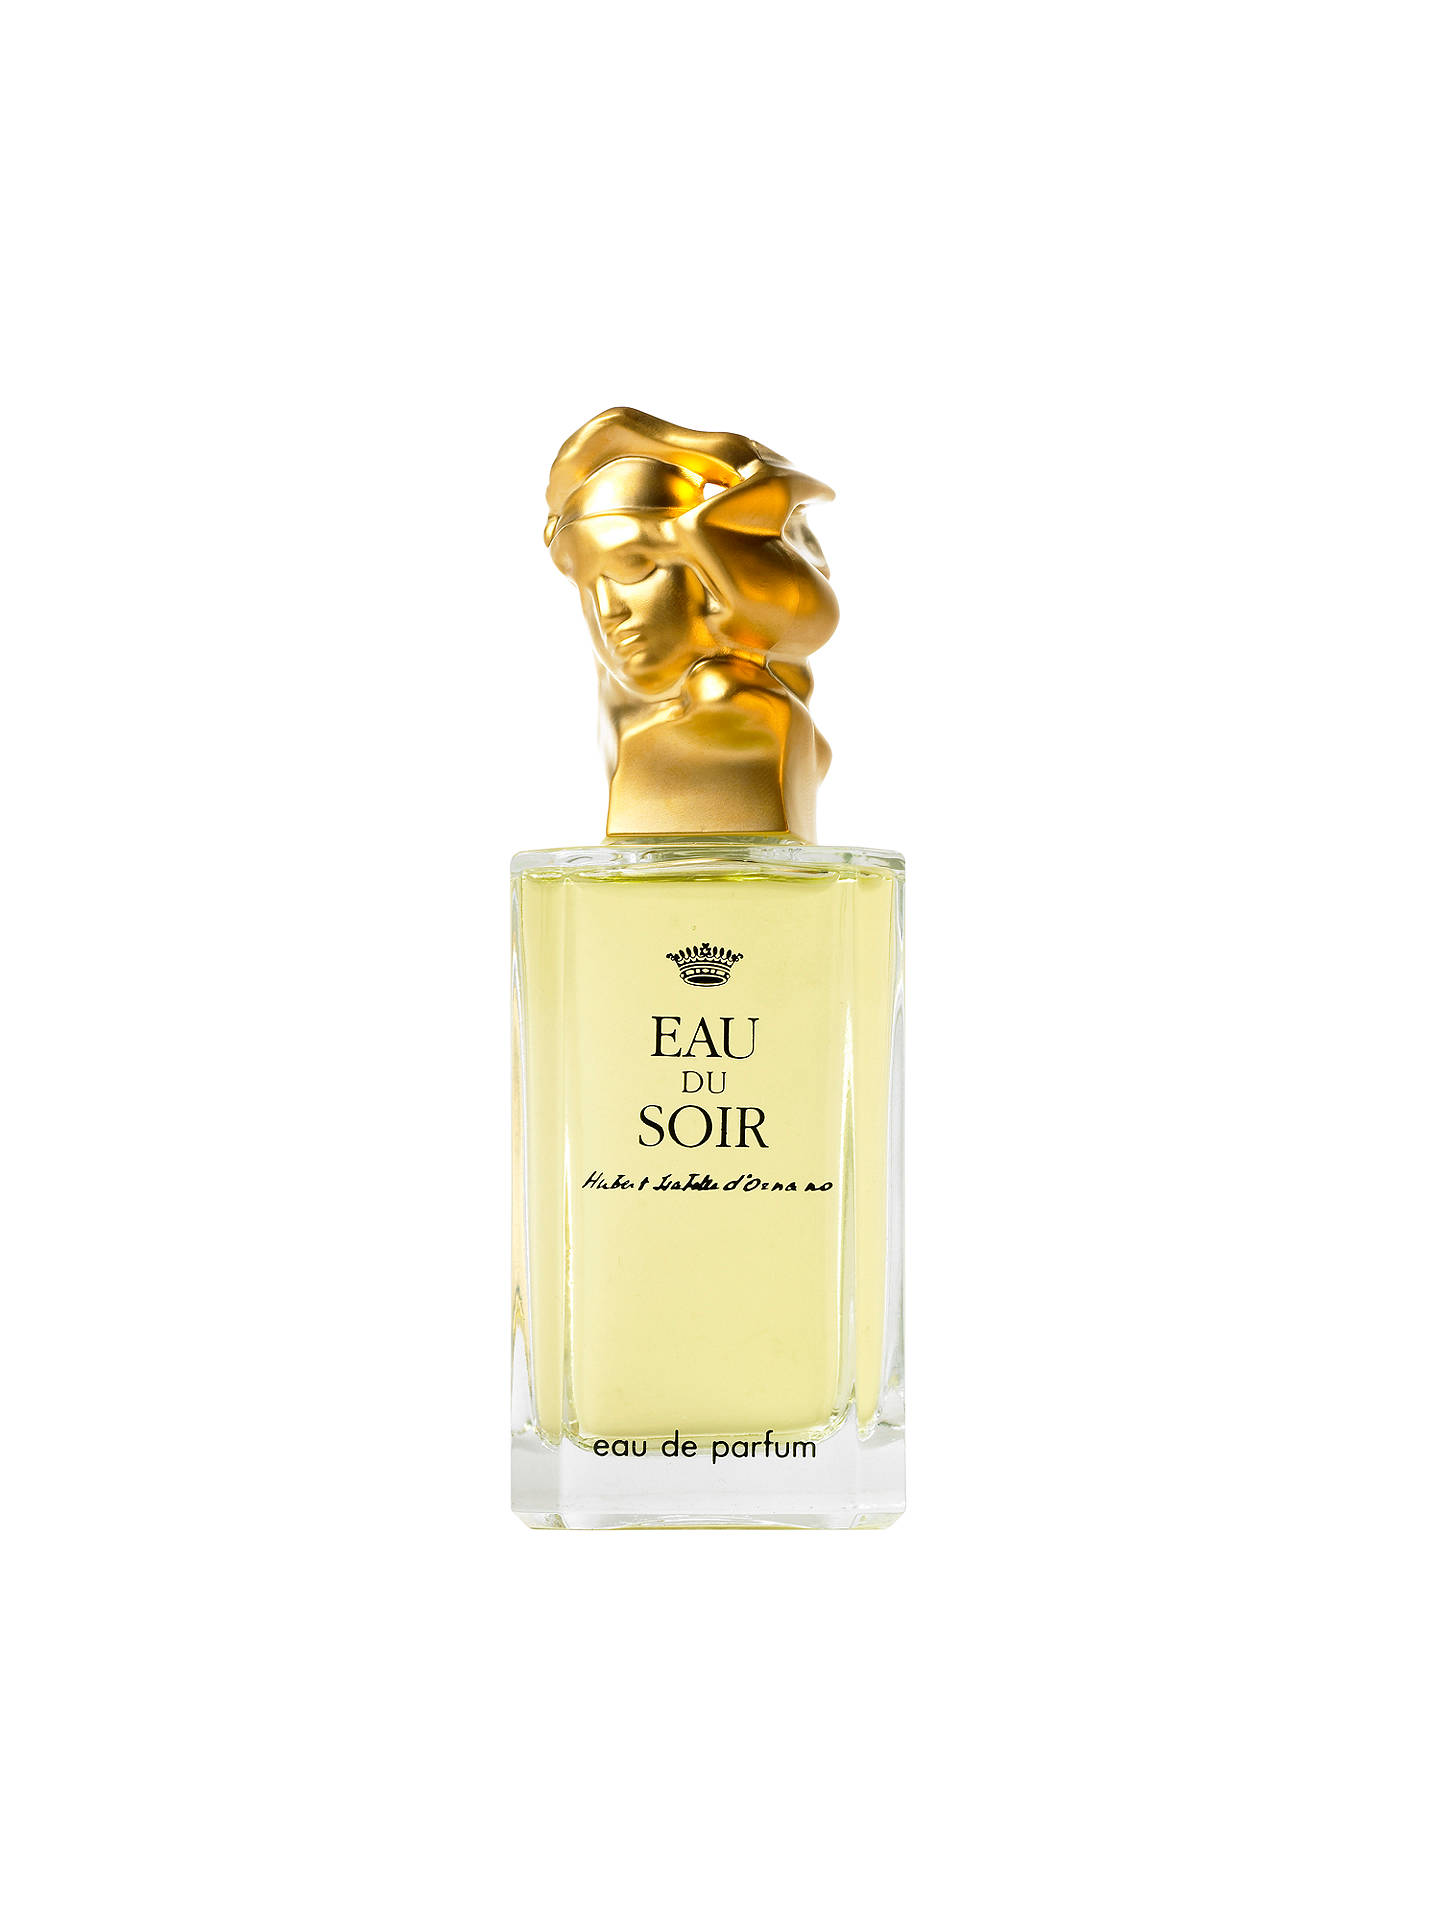 Buy Sisley Eau du Soir Eau de Parfum, 100ml Online at johnlewis.com